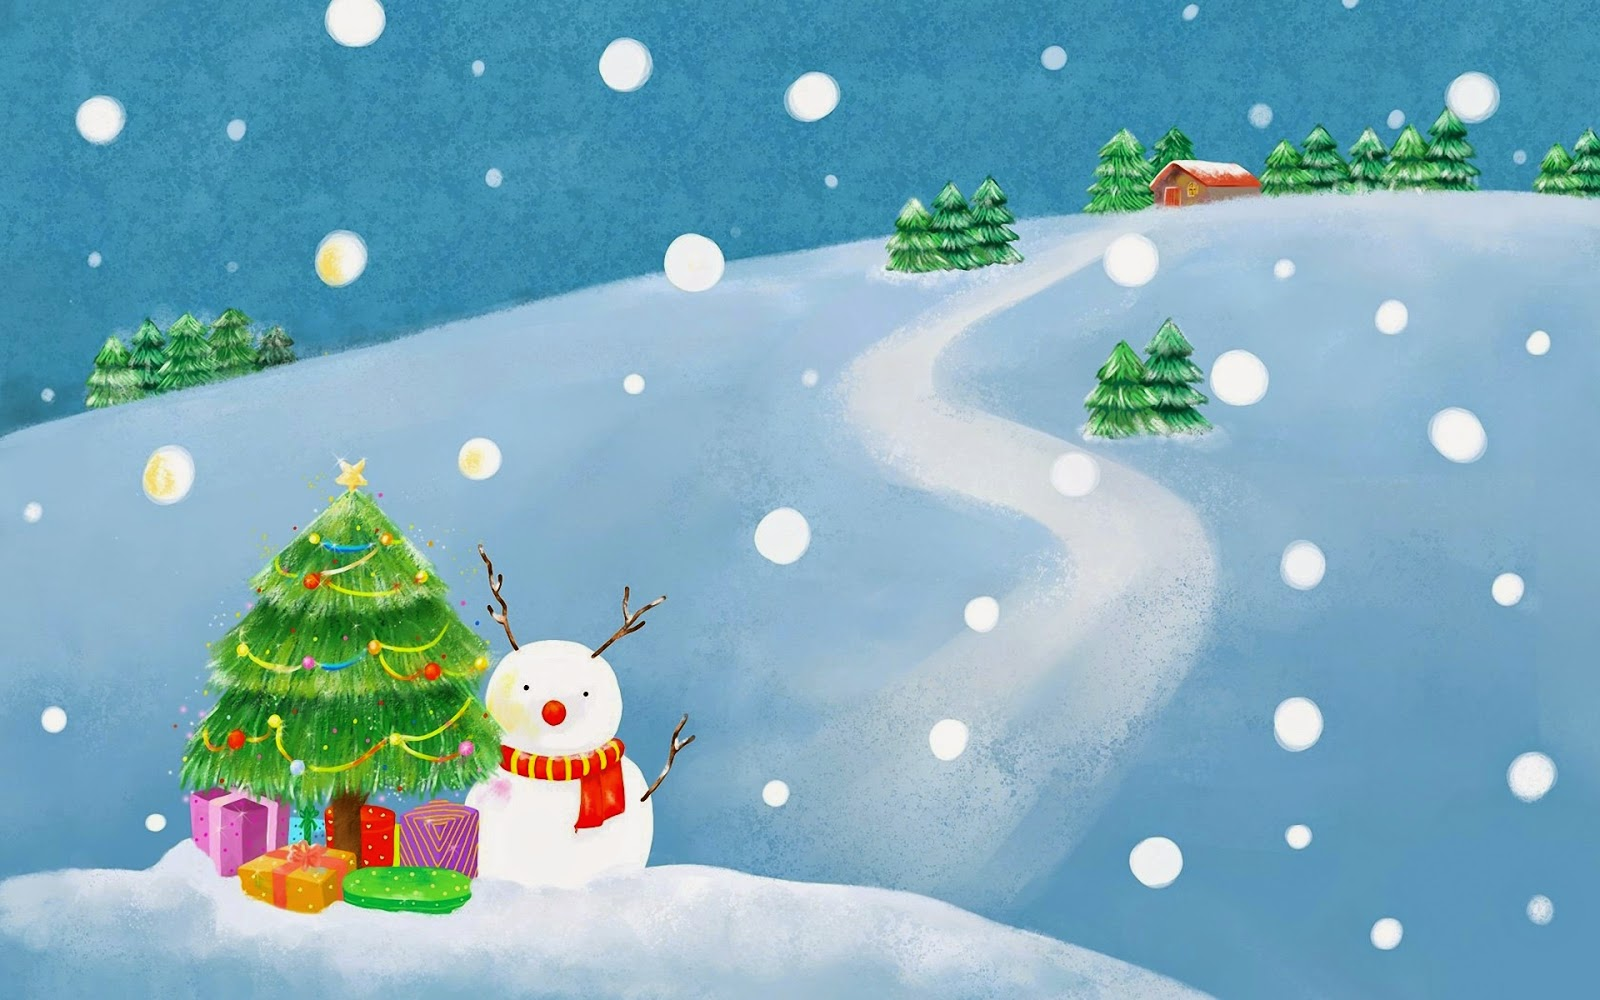 Christmas-cartoon-images-pictures-for-facebook-kids-sharing-free-download.jpg